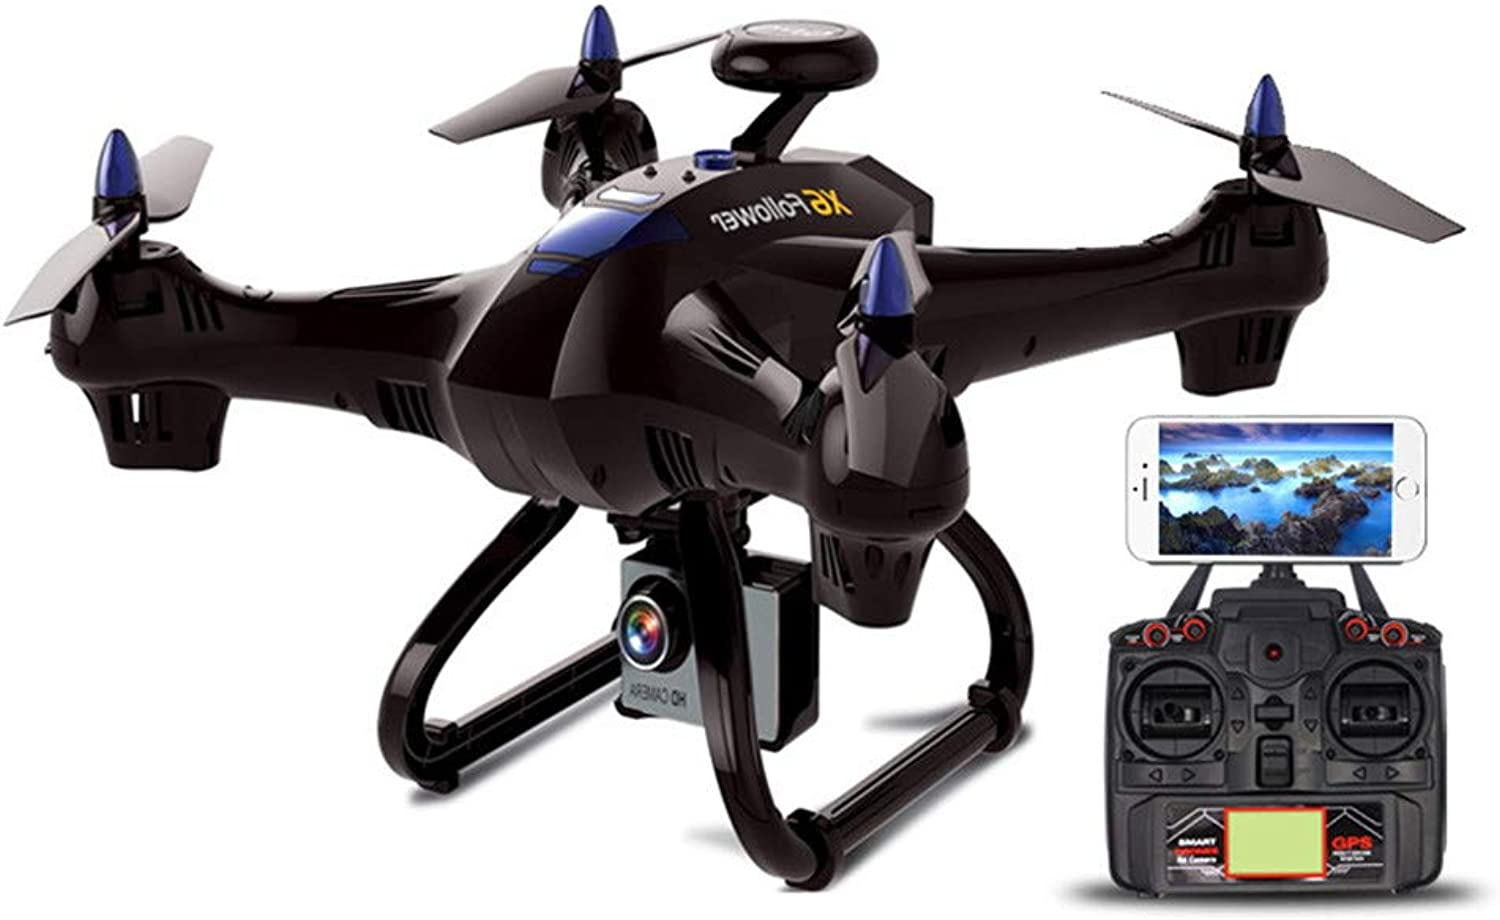 HUAXING Drone With Camera, E58 WIFI FPV Quadcopter With 2MP 720P Wide Angle Camera Live Video Mobile APP Control Foldable,720P